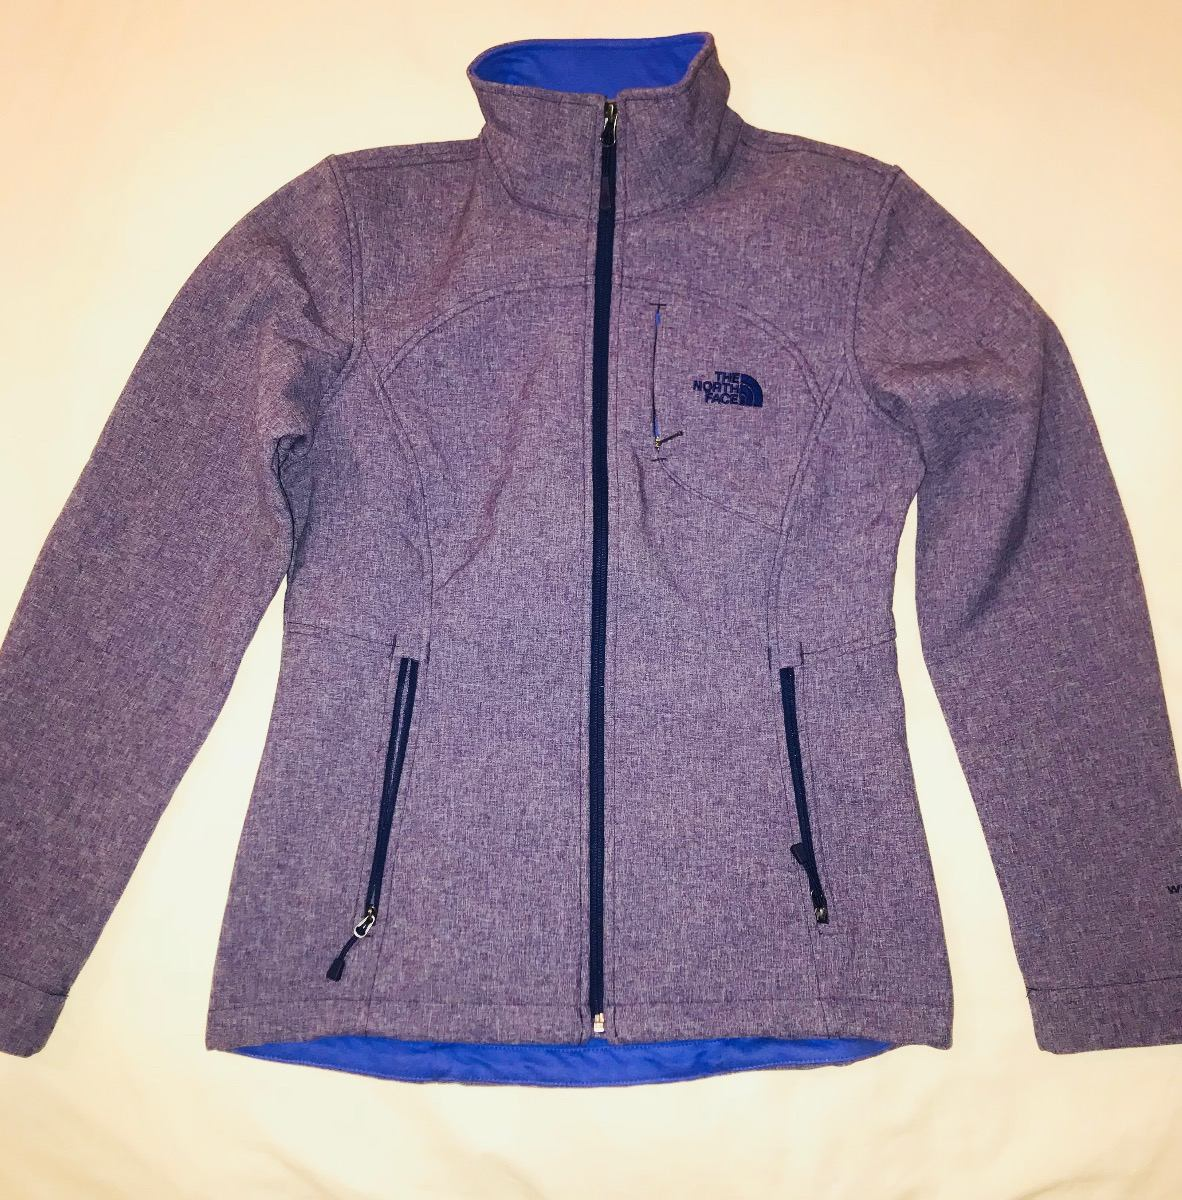 ... campera the north face ironton jacket softshell mujer s. Cargando zoom.  on feet images ... bdbc981a830